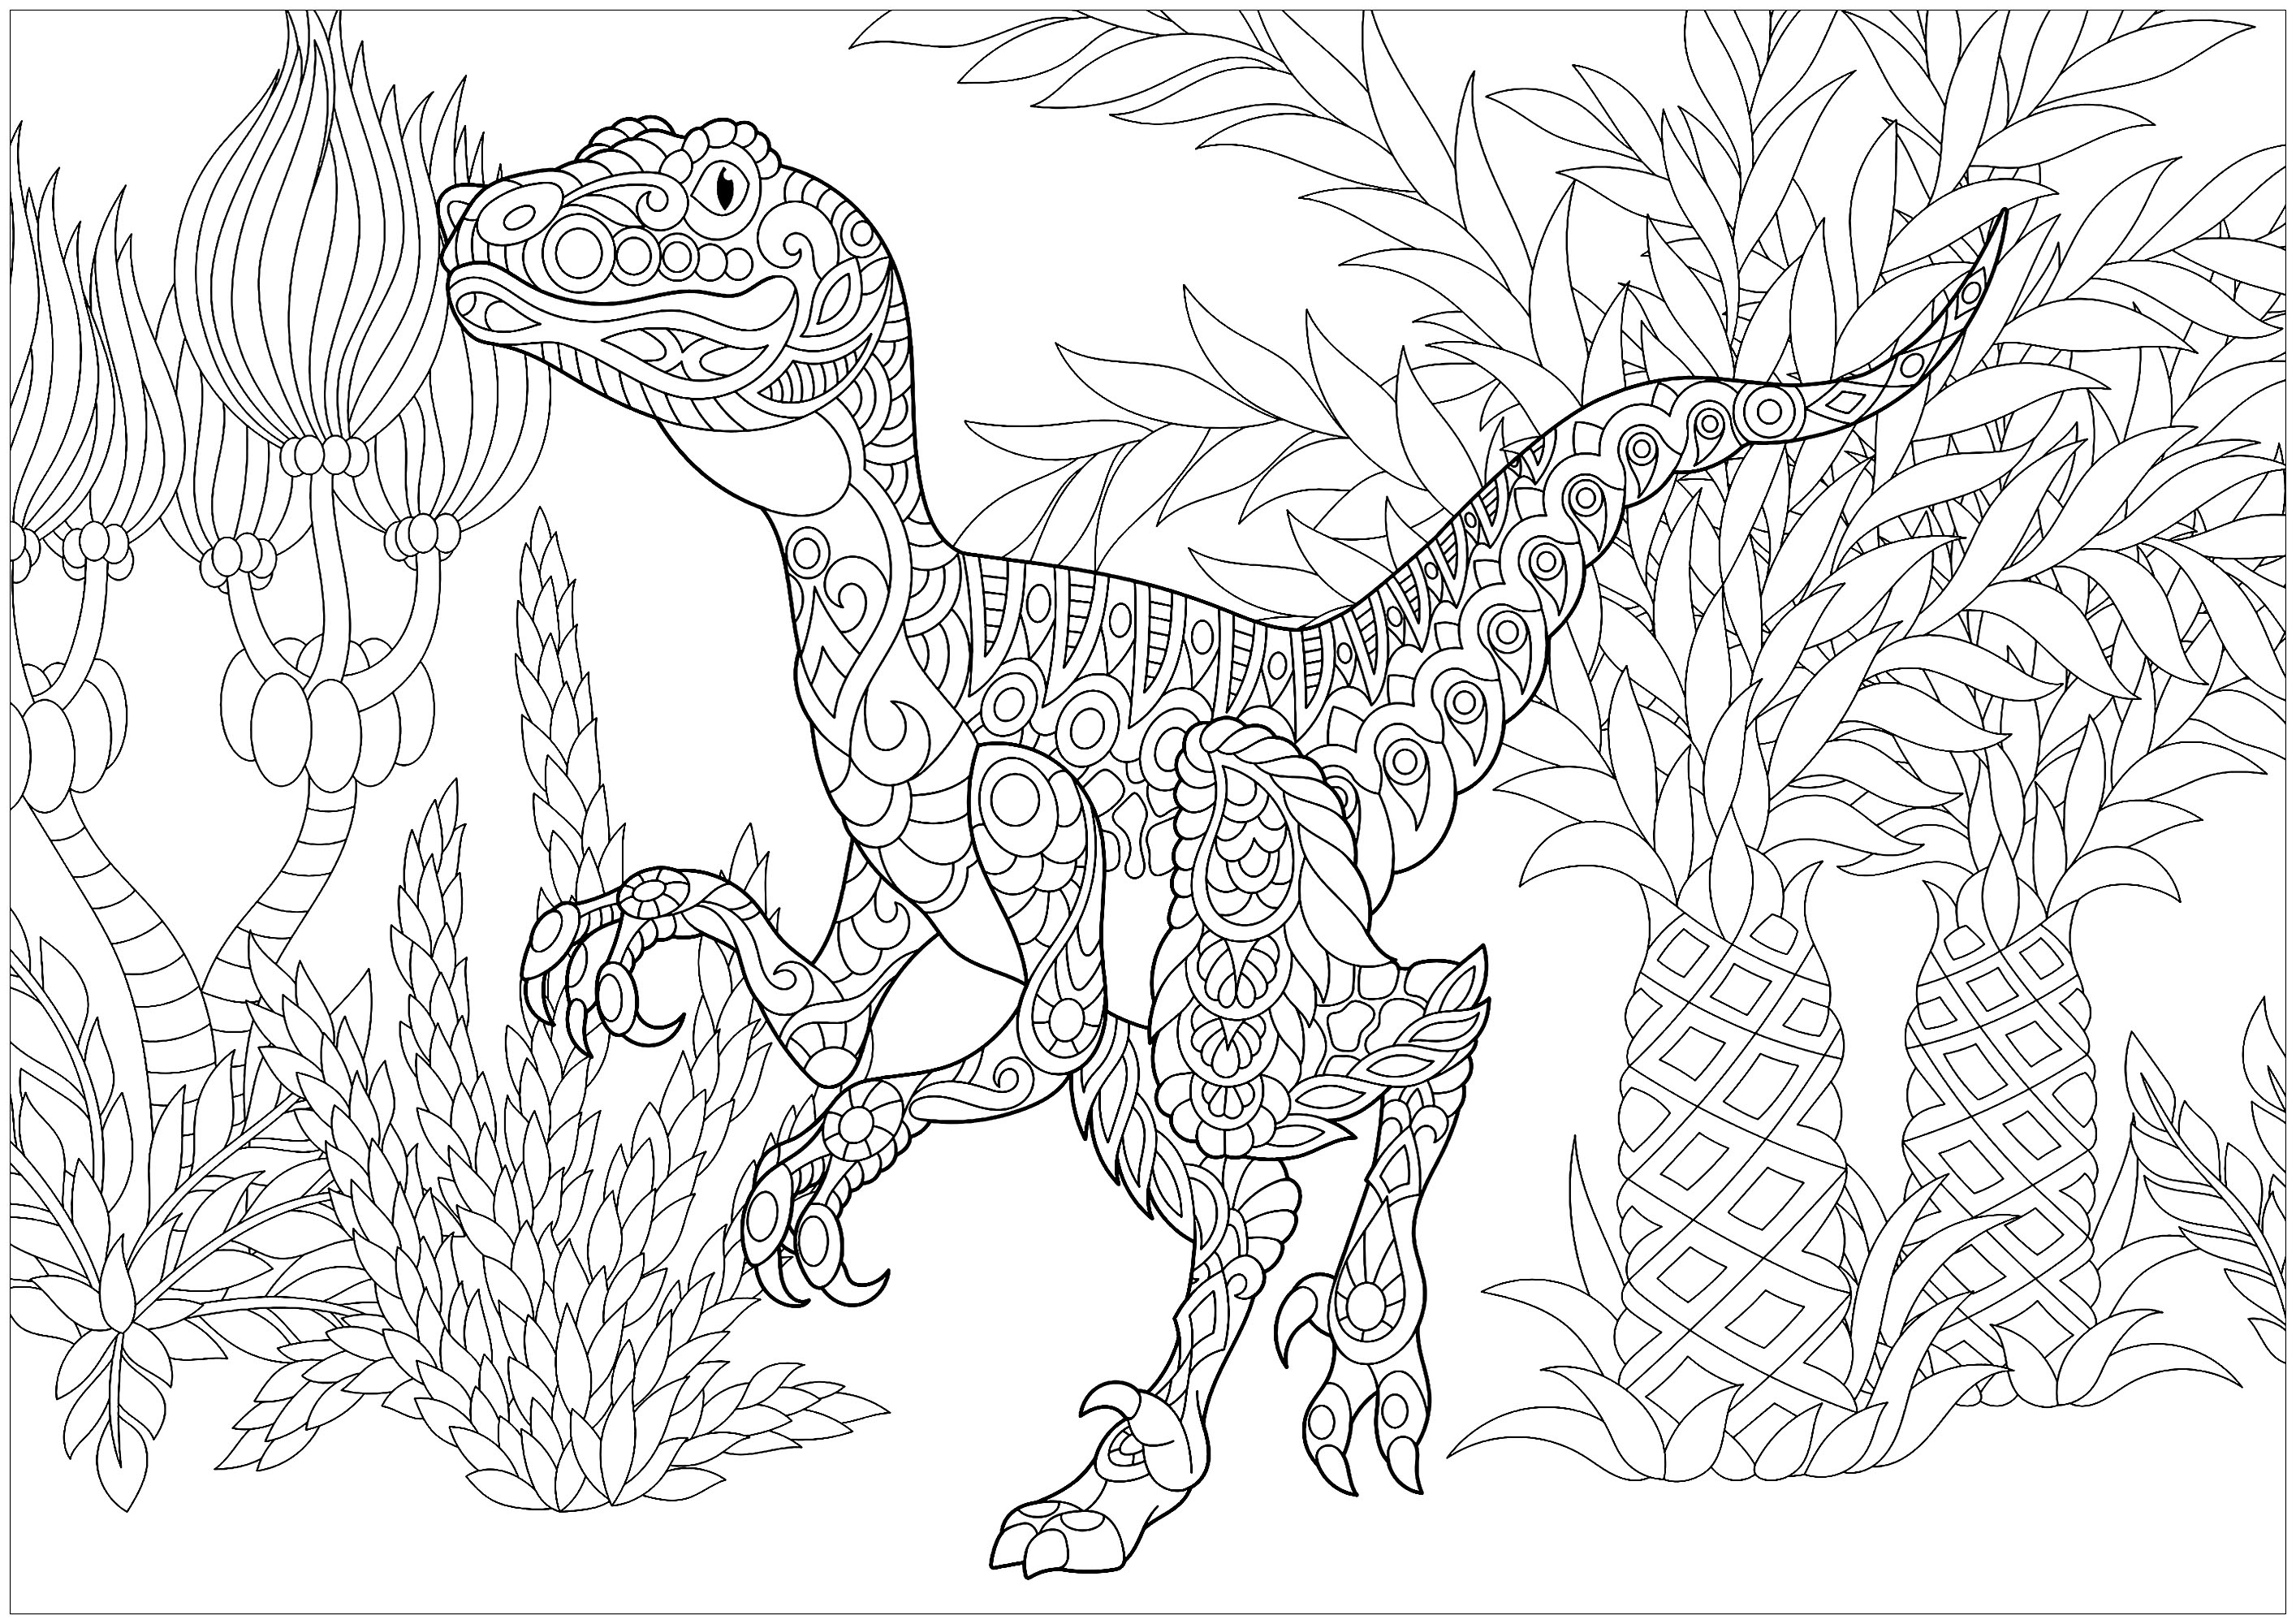 colouring in dinosaurs lets coloring book prehistoric jurassic world dinosaurs dinosaurs in colouring